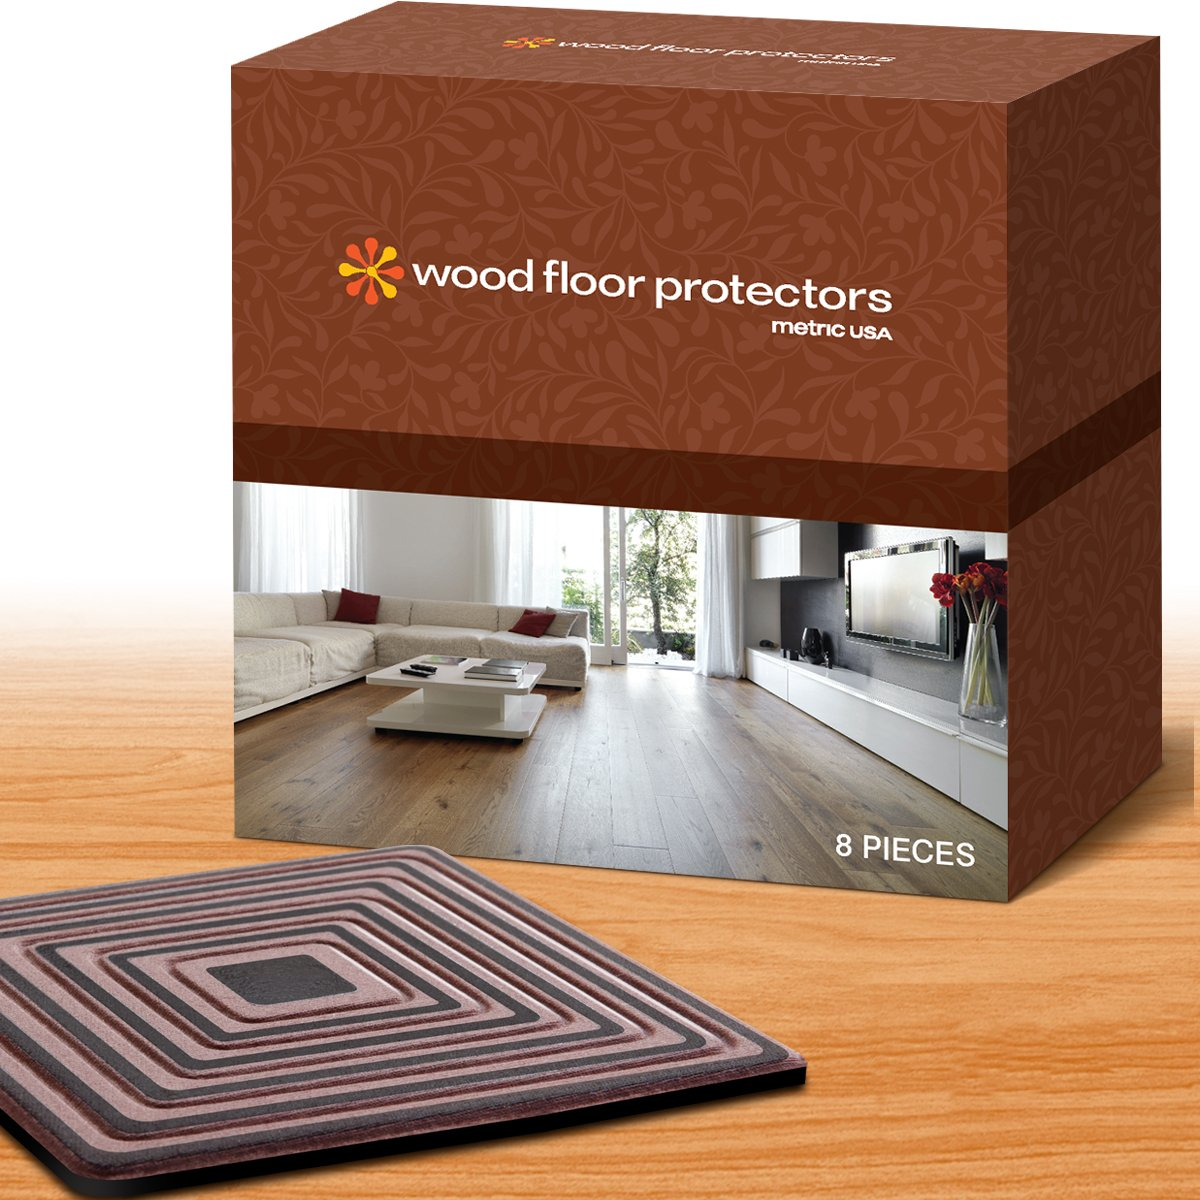 Wood Floor Protectors | WB Designs